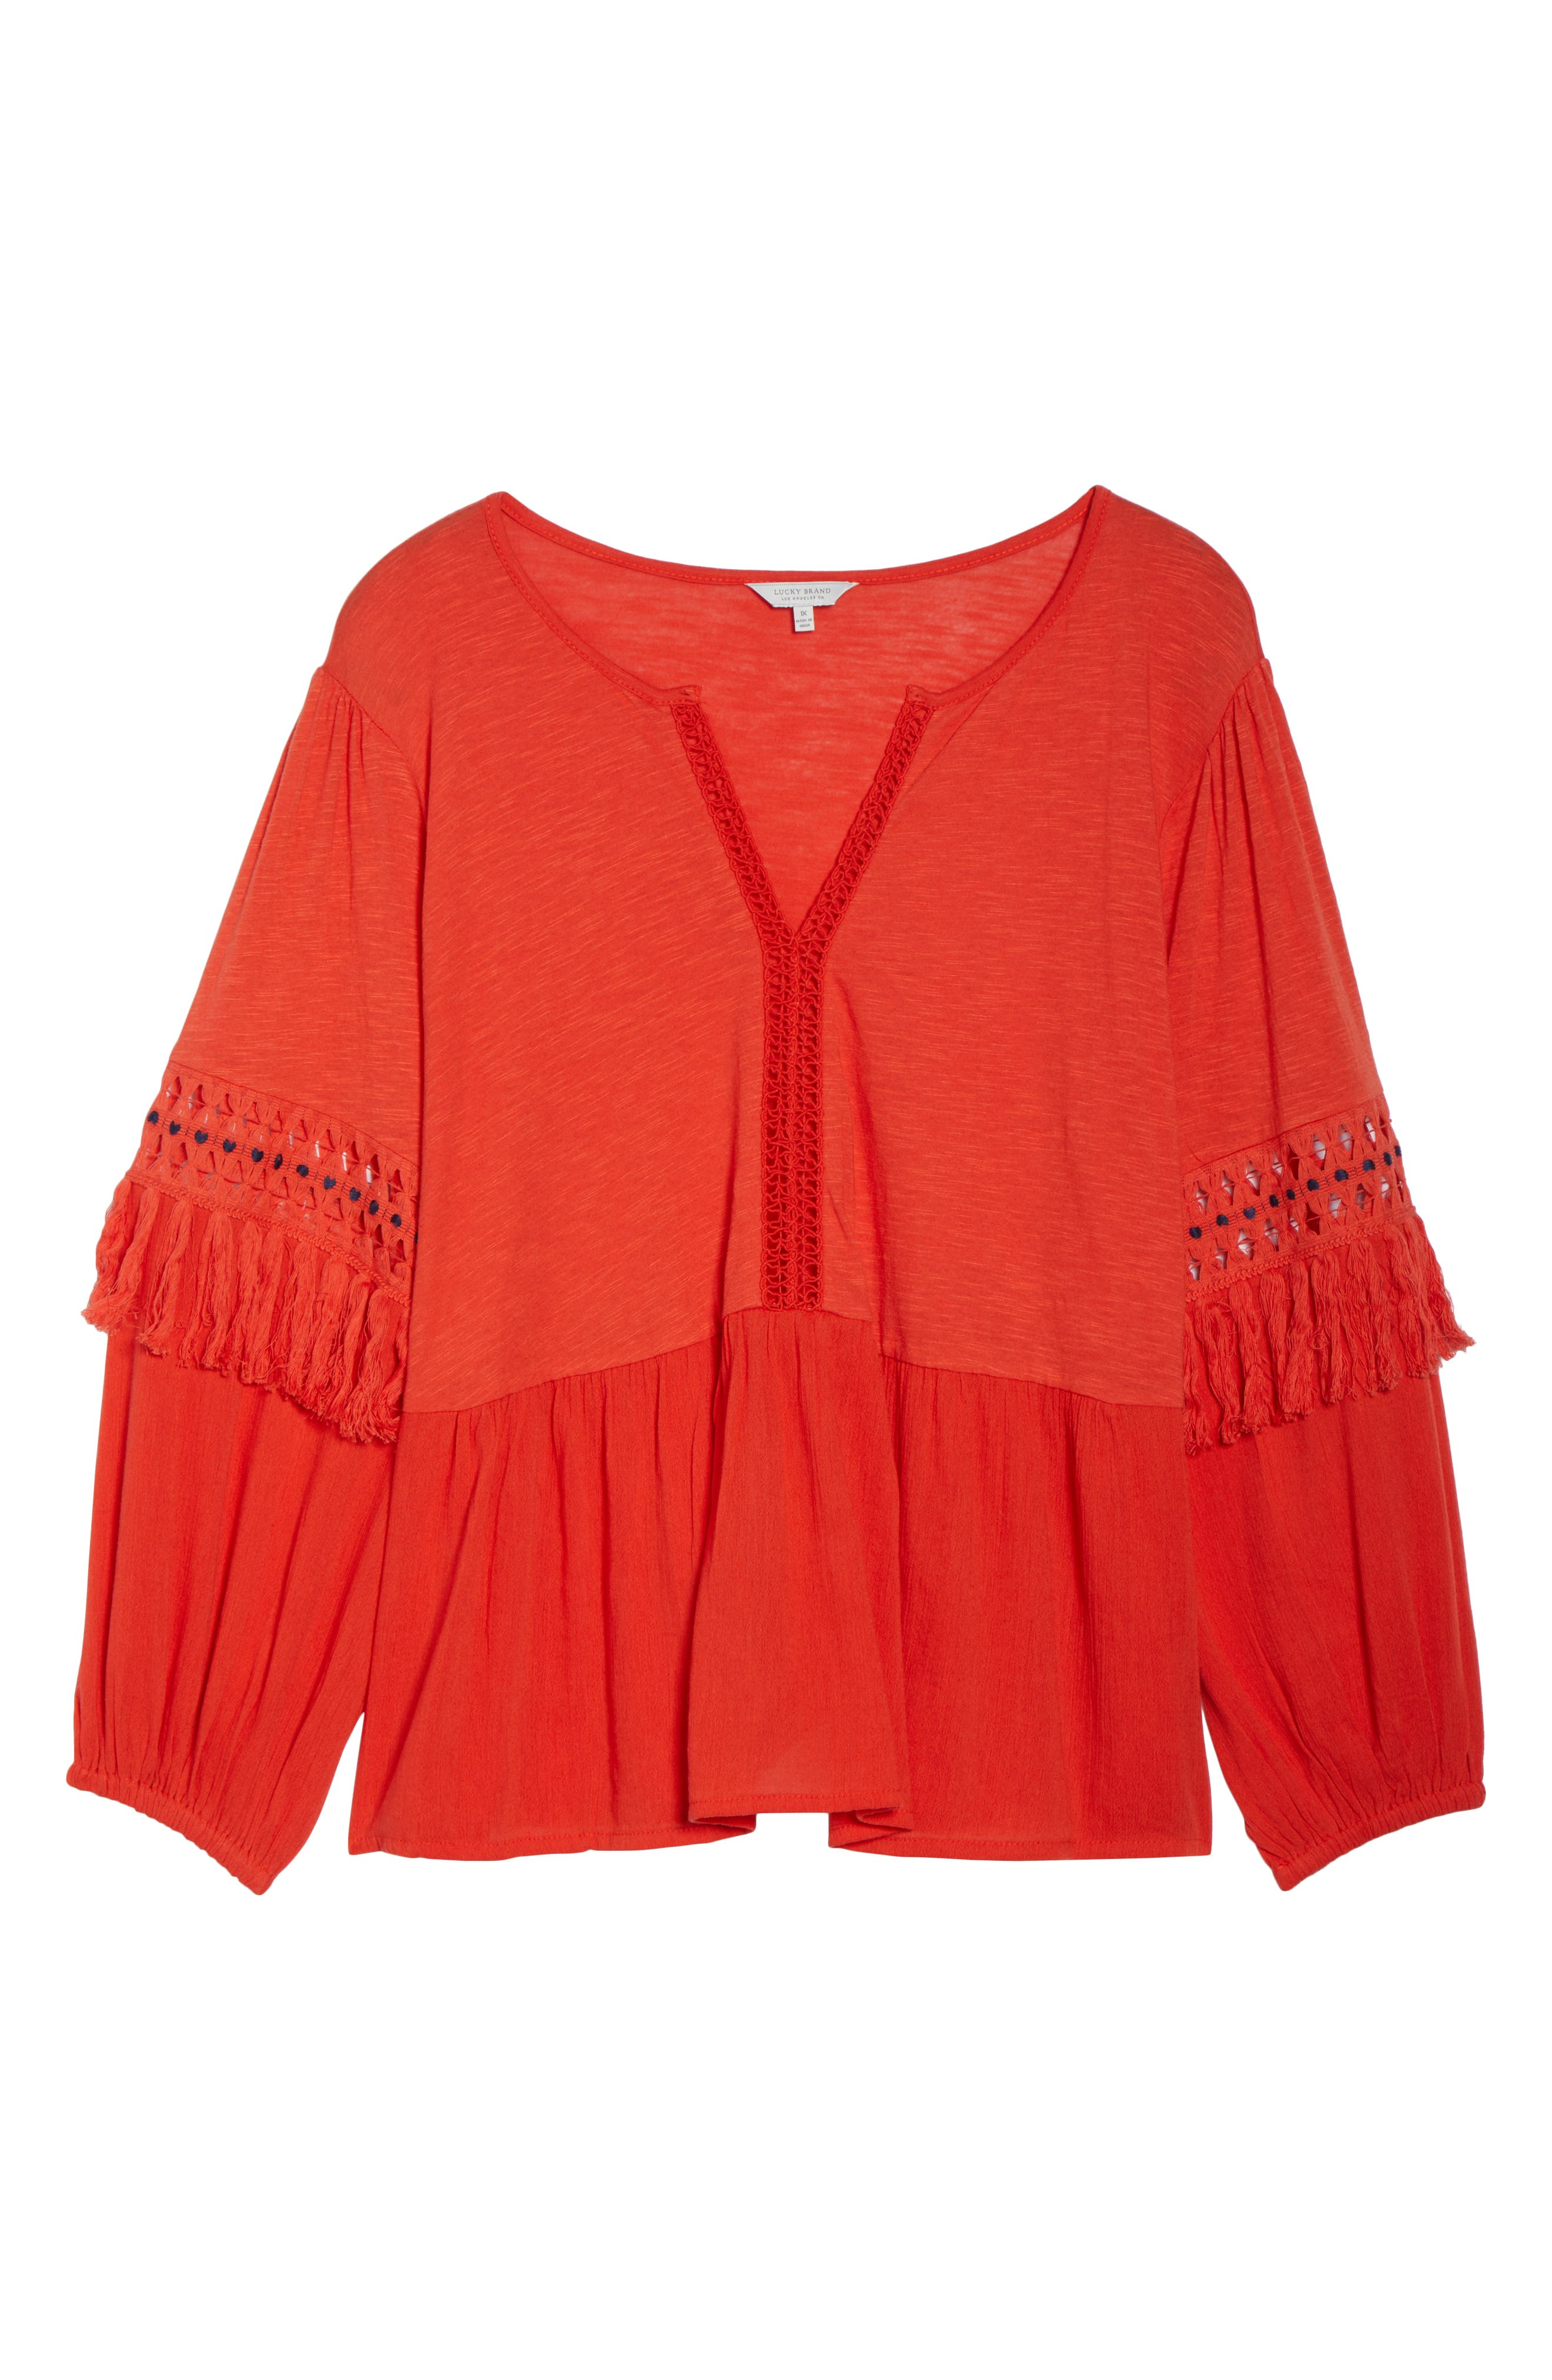 Cutout Peasant Top,                             Alternate thumbnail 7, color,                             Red Clay